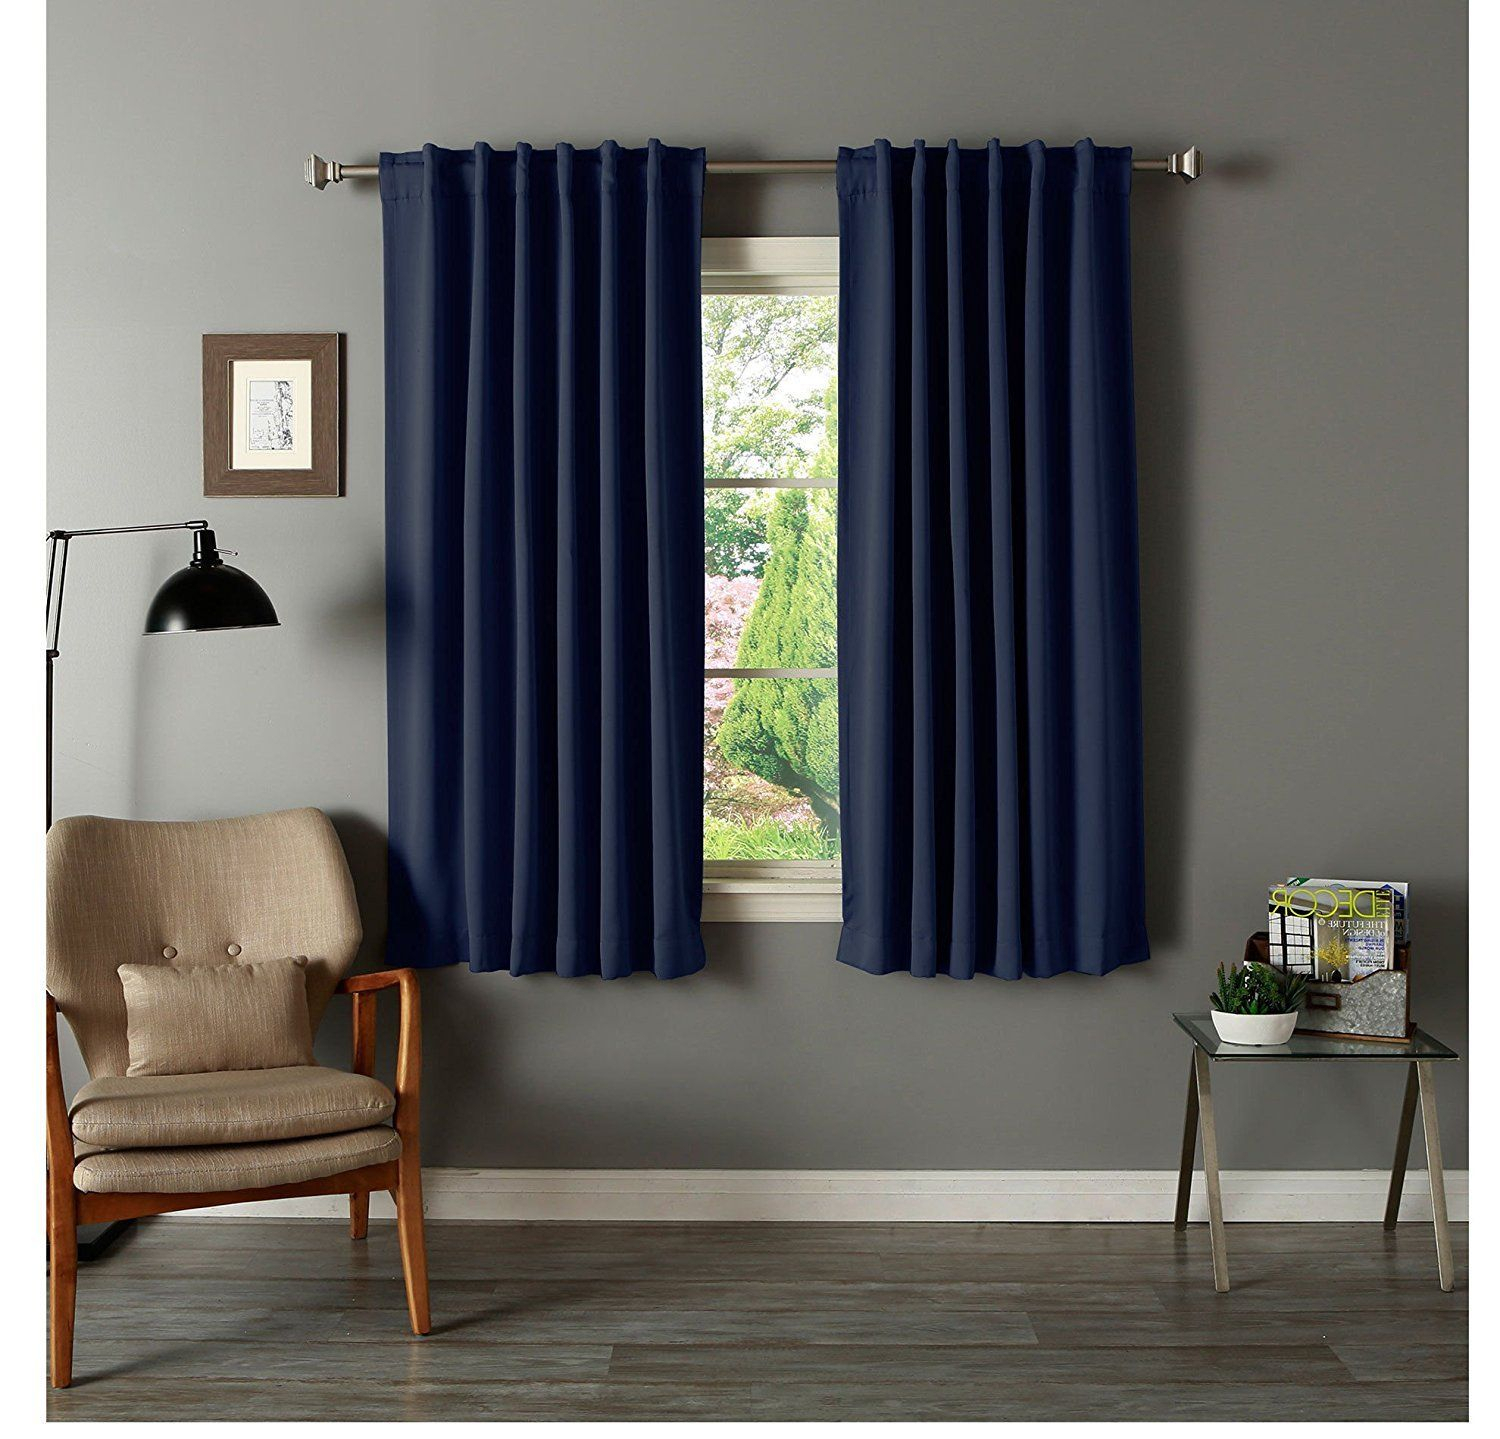 63 Inch Girls Navy Solid Color Blackout Curtain Panel Pair With Regard To Thermal Rod Pocket Blackout Curtain Panel Pairs (View 6 of 30)